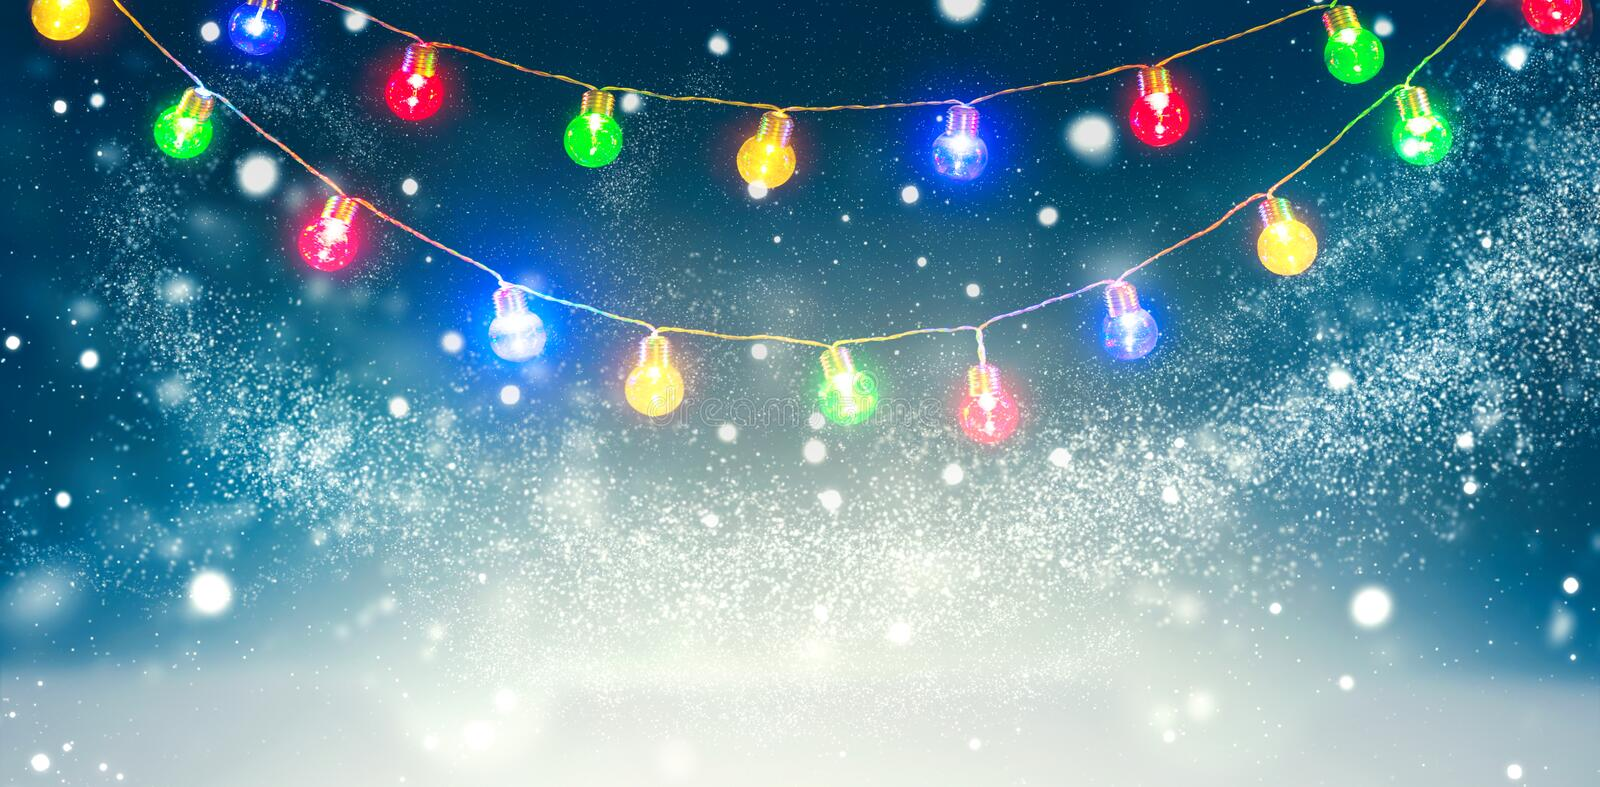 Winter holiday snow background decorated with colorful light bulbs garland. Snowflakes. Christmas and New Year abstract backdrop royalty free illustration